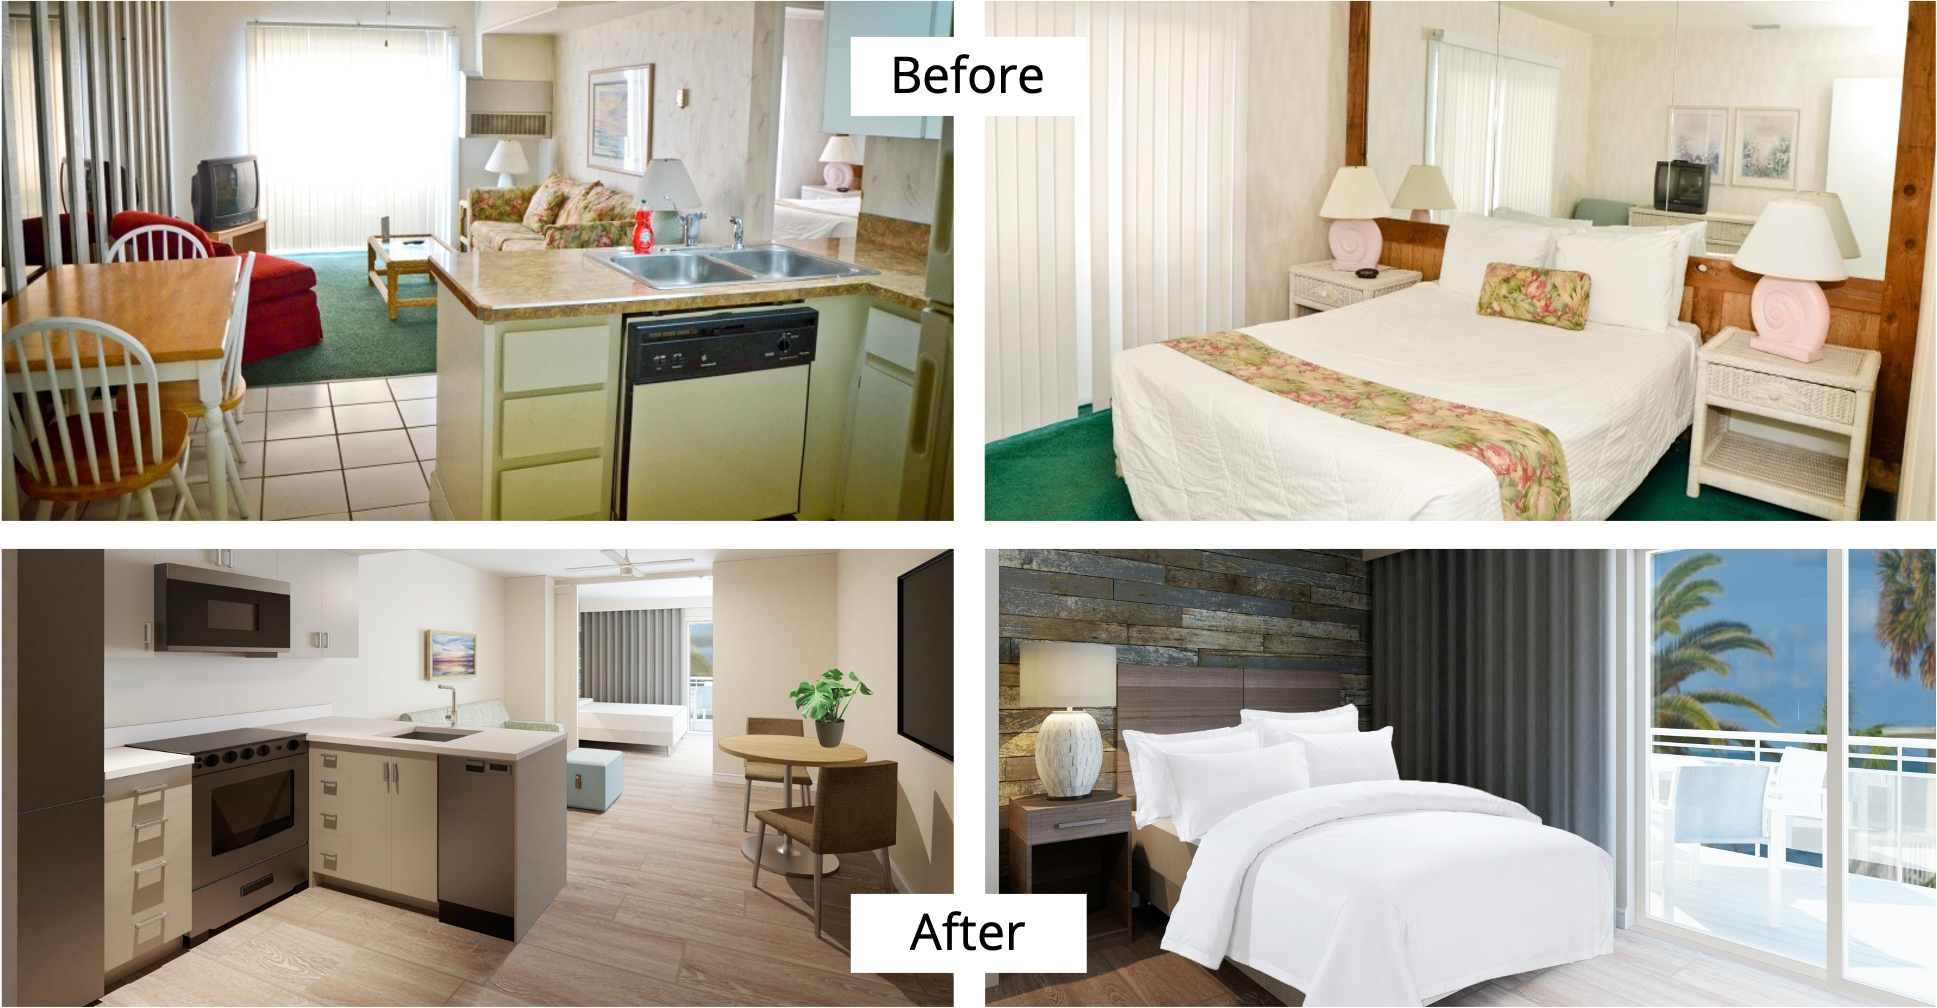 Vacatia Partner Services Offers Innovative New Model to Finance Renovations at Legacy Resorts